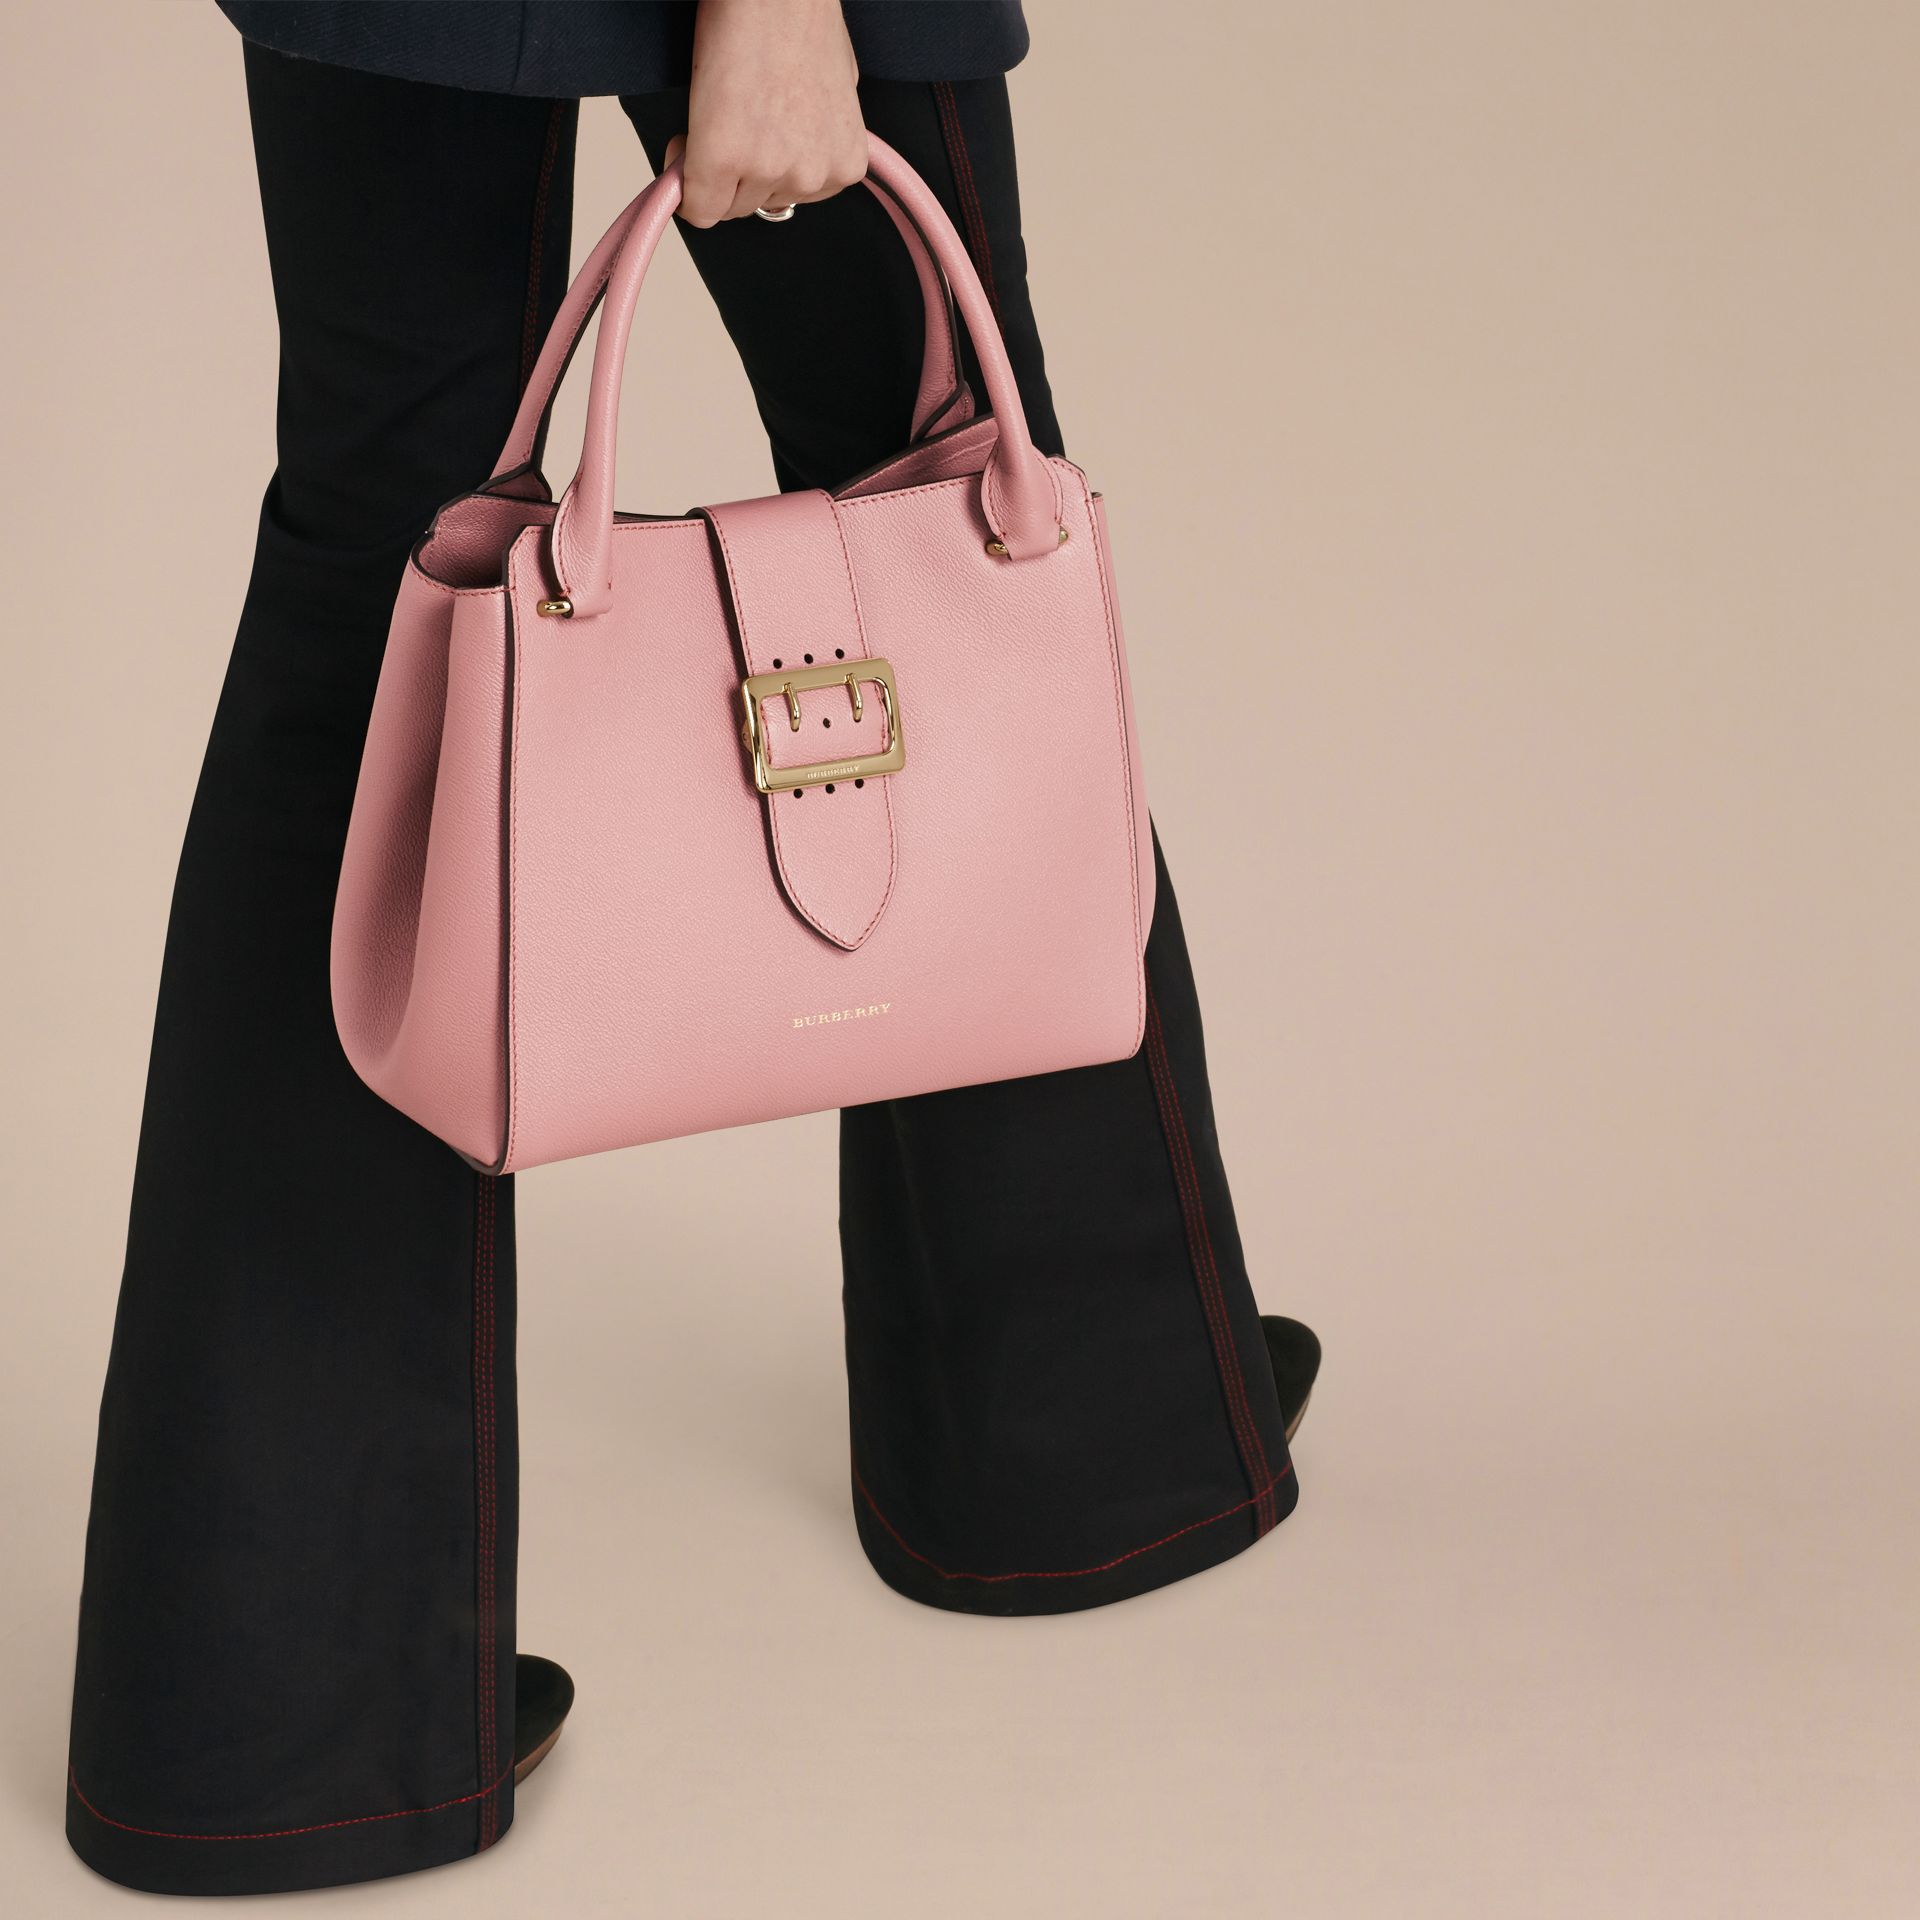 Dusty pink The Medium Buckle Tote in Grainy Leather Dusty Pink - gallery image 3